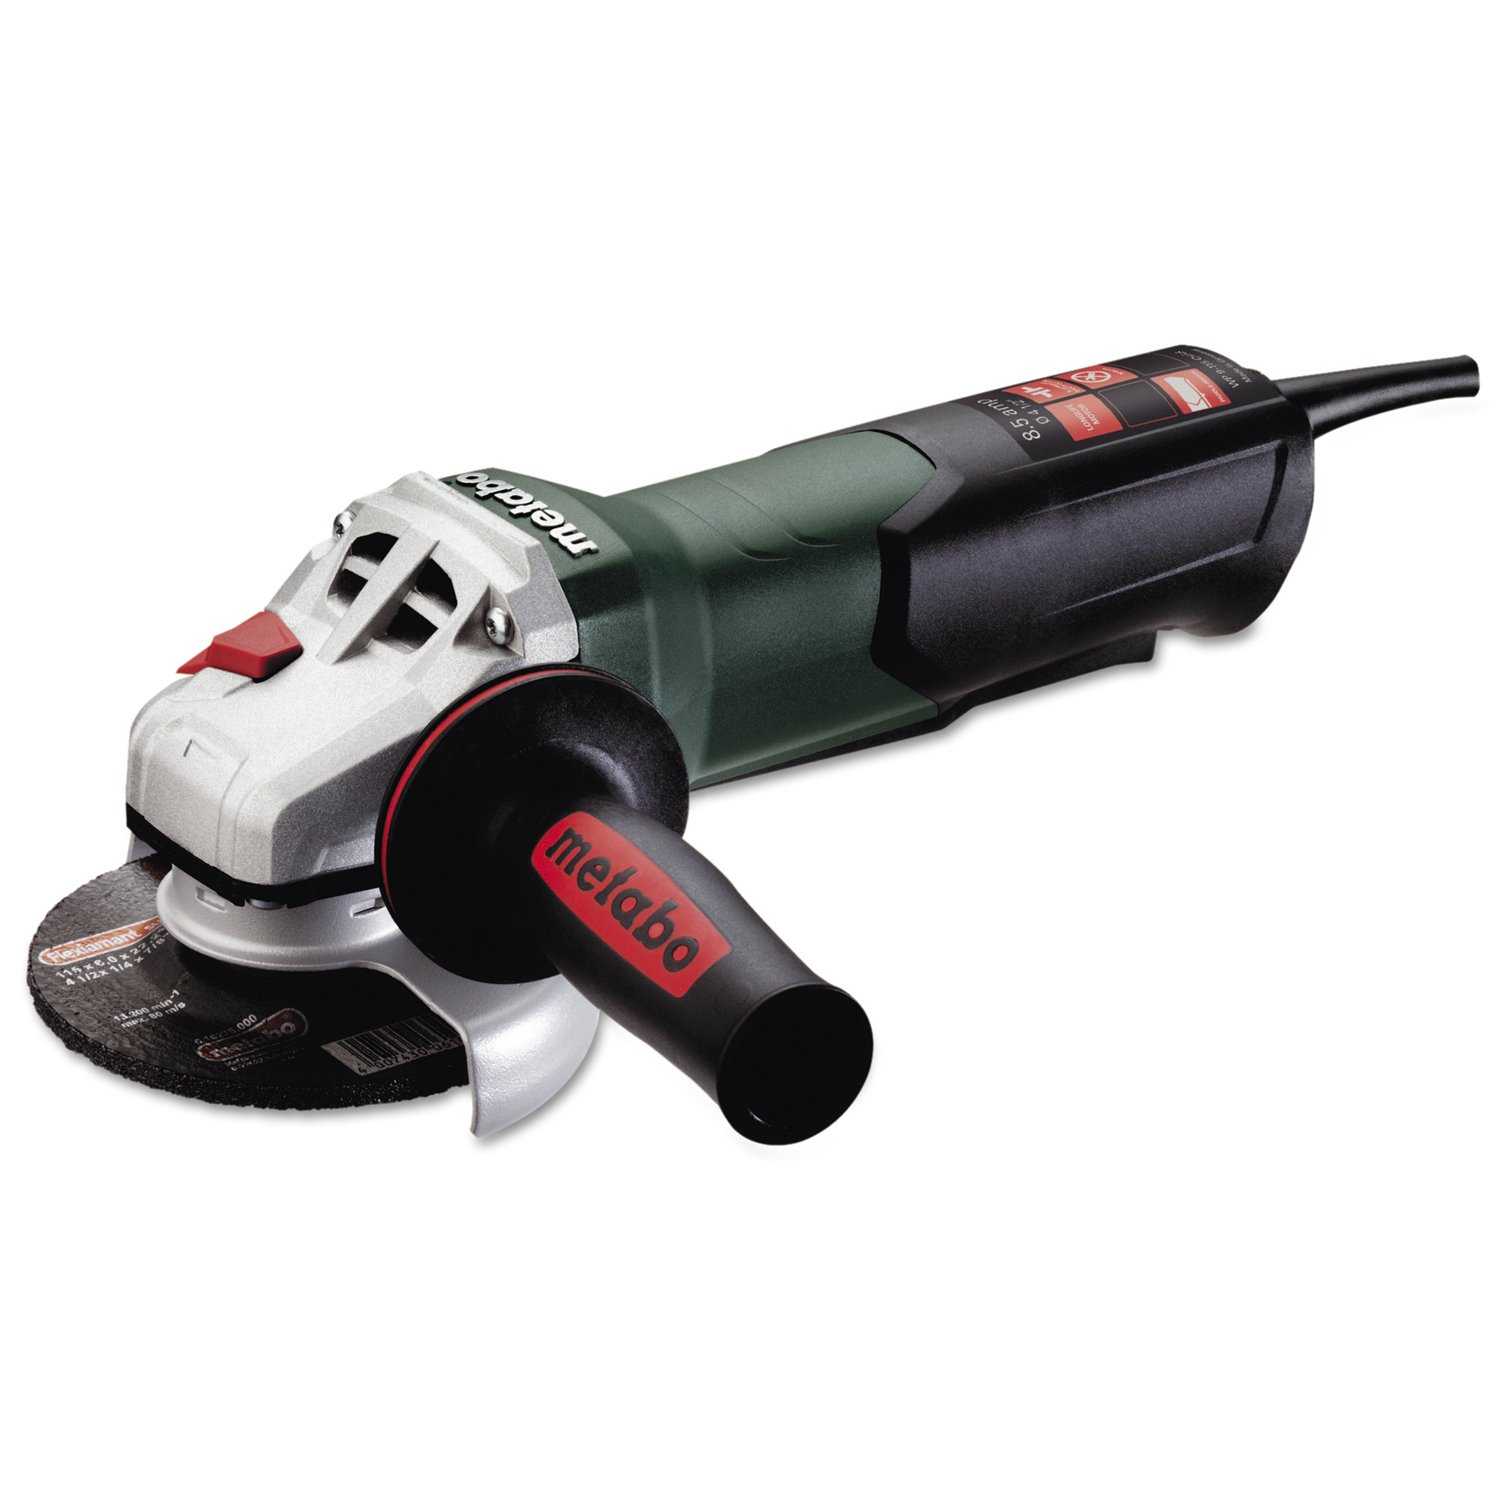 Metabo WP9-115Q 900 Watt 4 1/2'' Angle Grinders, 8.5 A, 10,500 rpm, Paddle Switch, Non-Locking